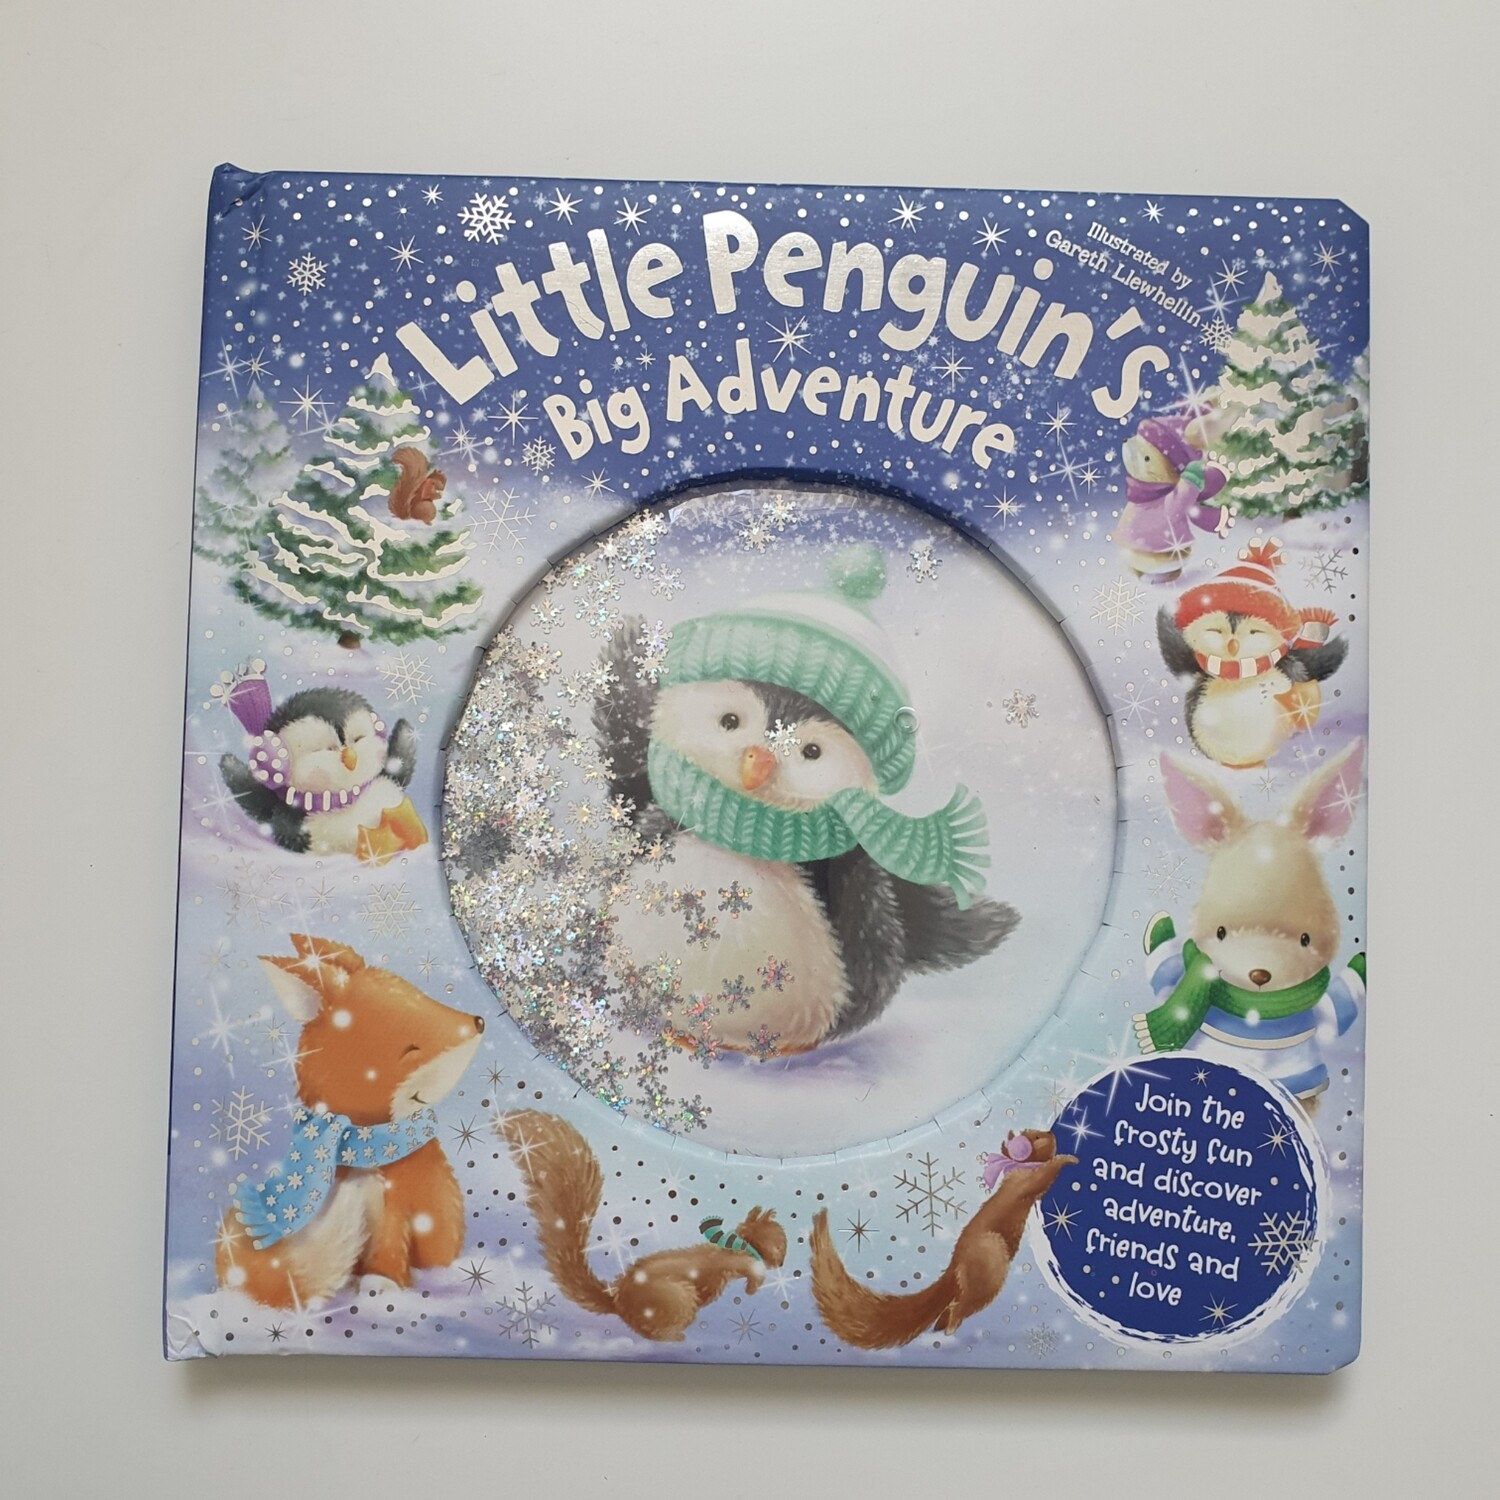 Little Penguin's Big Adventure - water snowflakes on the cover